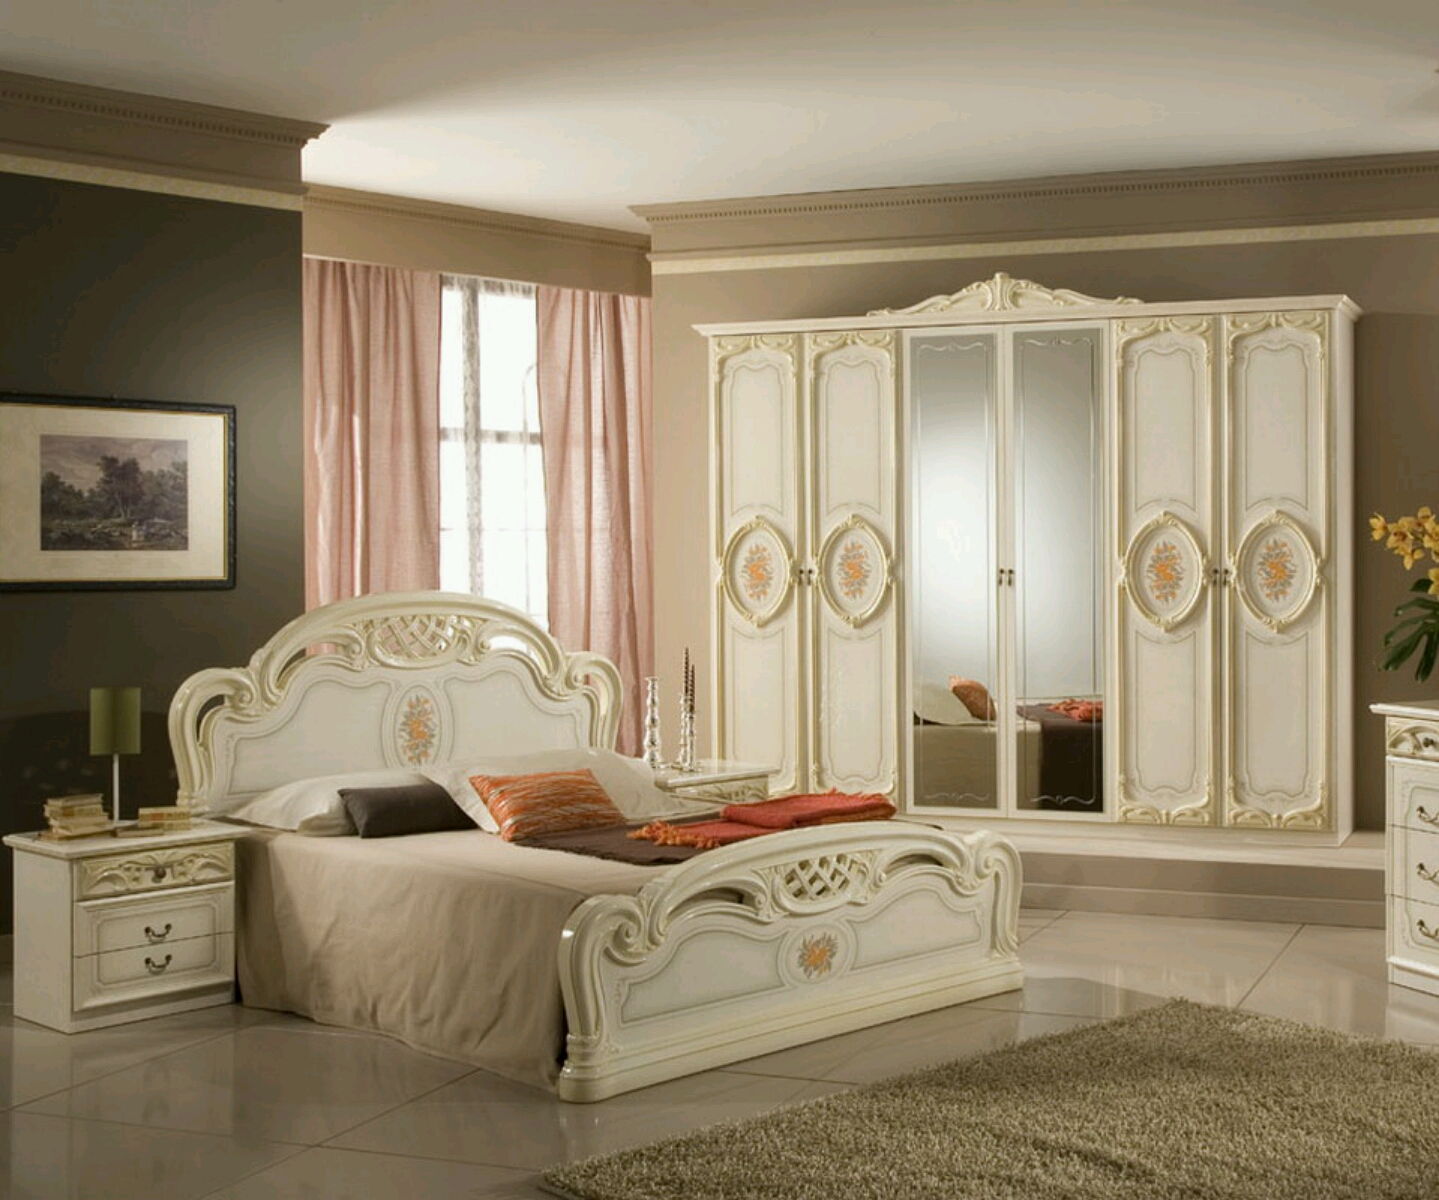 Http Galleryfurnitureblogkespot Blogspot Com 2012 12 Modern Luxury Bedroom Furniture Designs Html